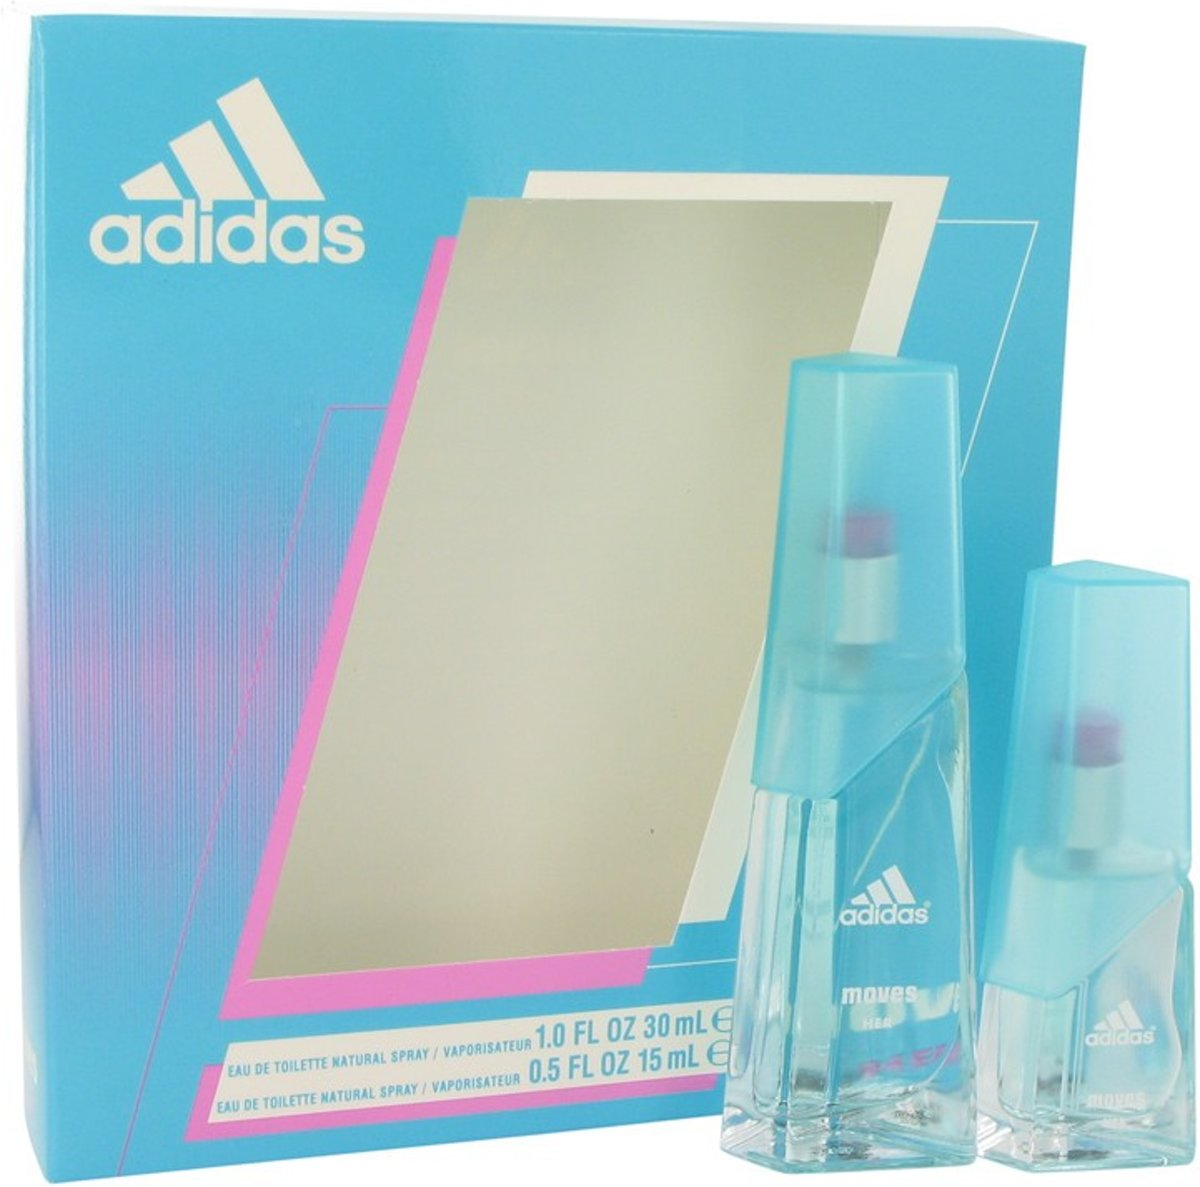 Adidas Gift Set Adidas Moves By Adidas - Fragrances For Women